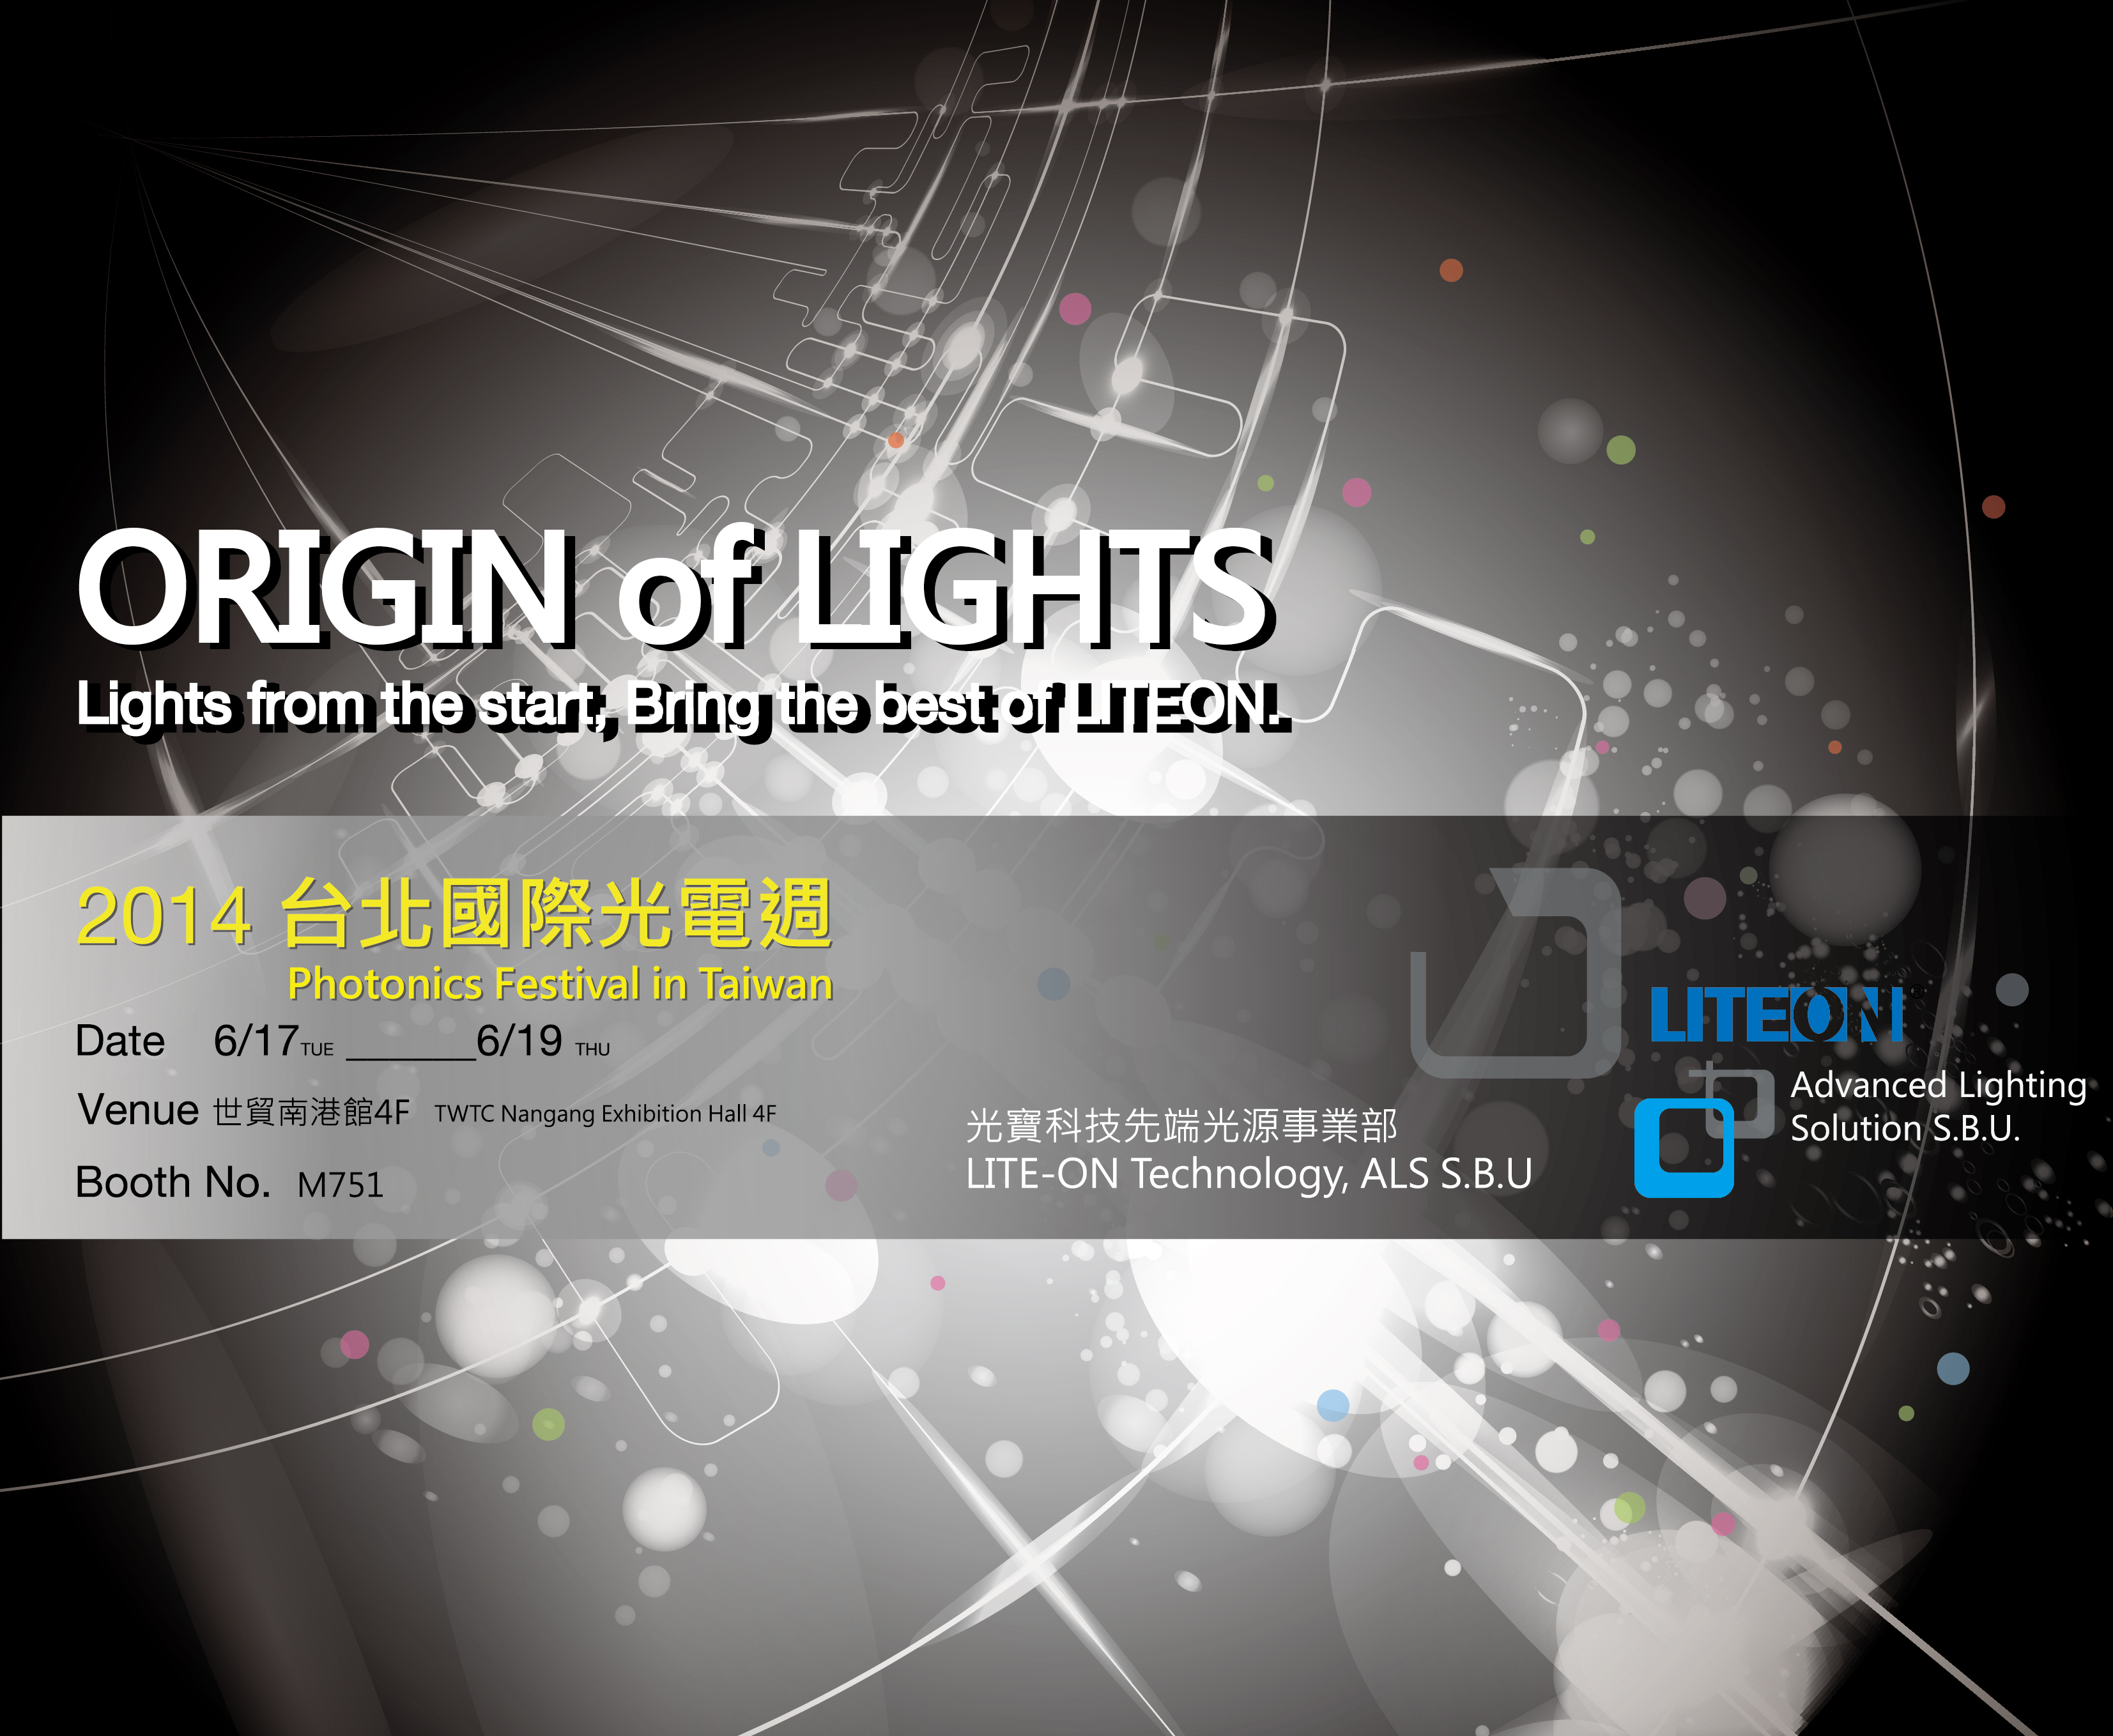 2014 Photonics Festival in Taiwan